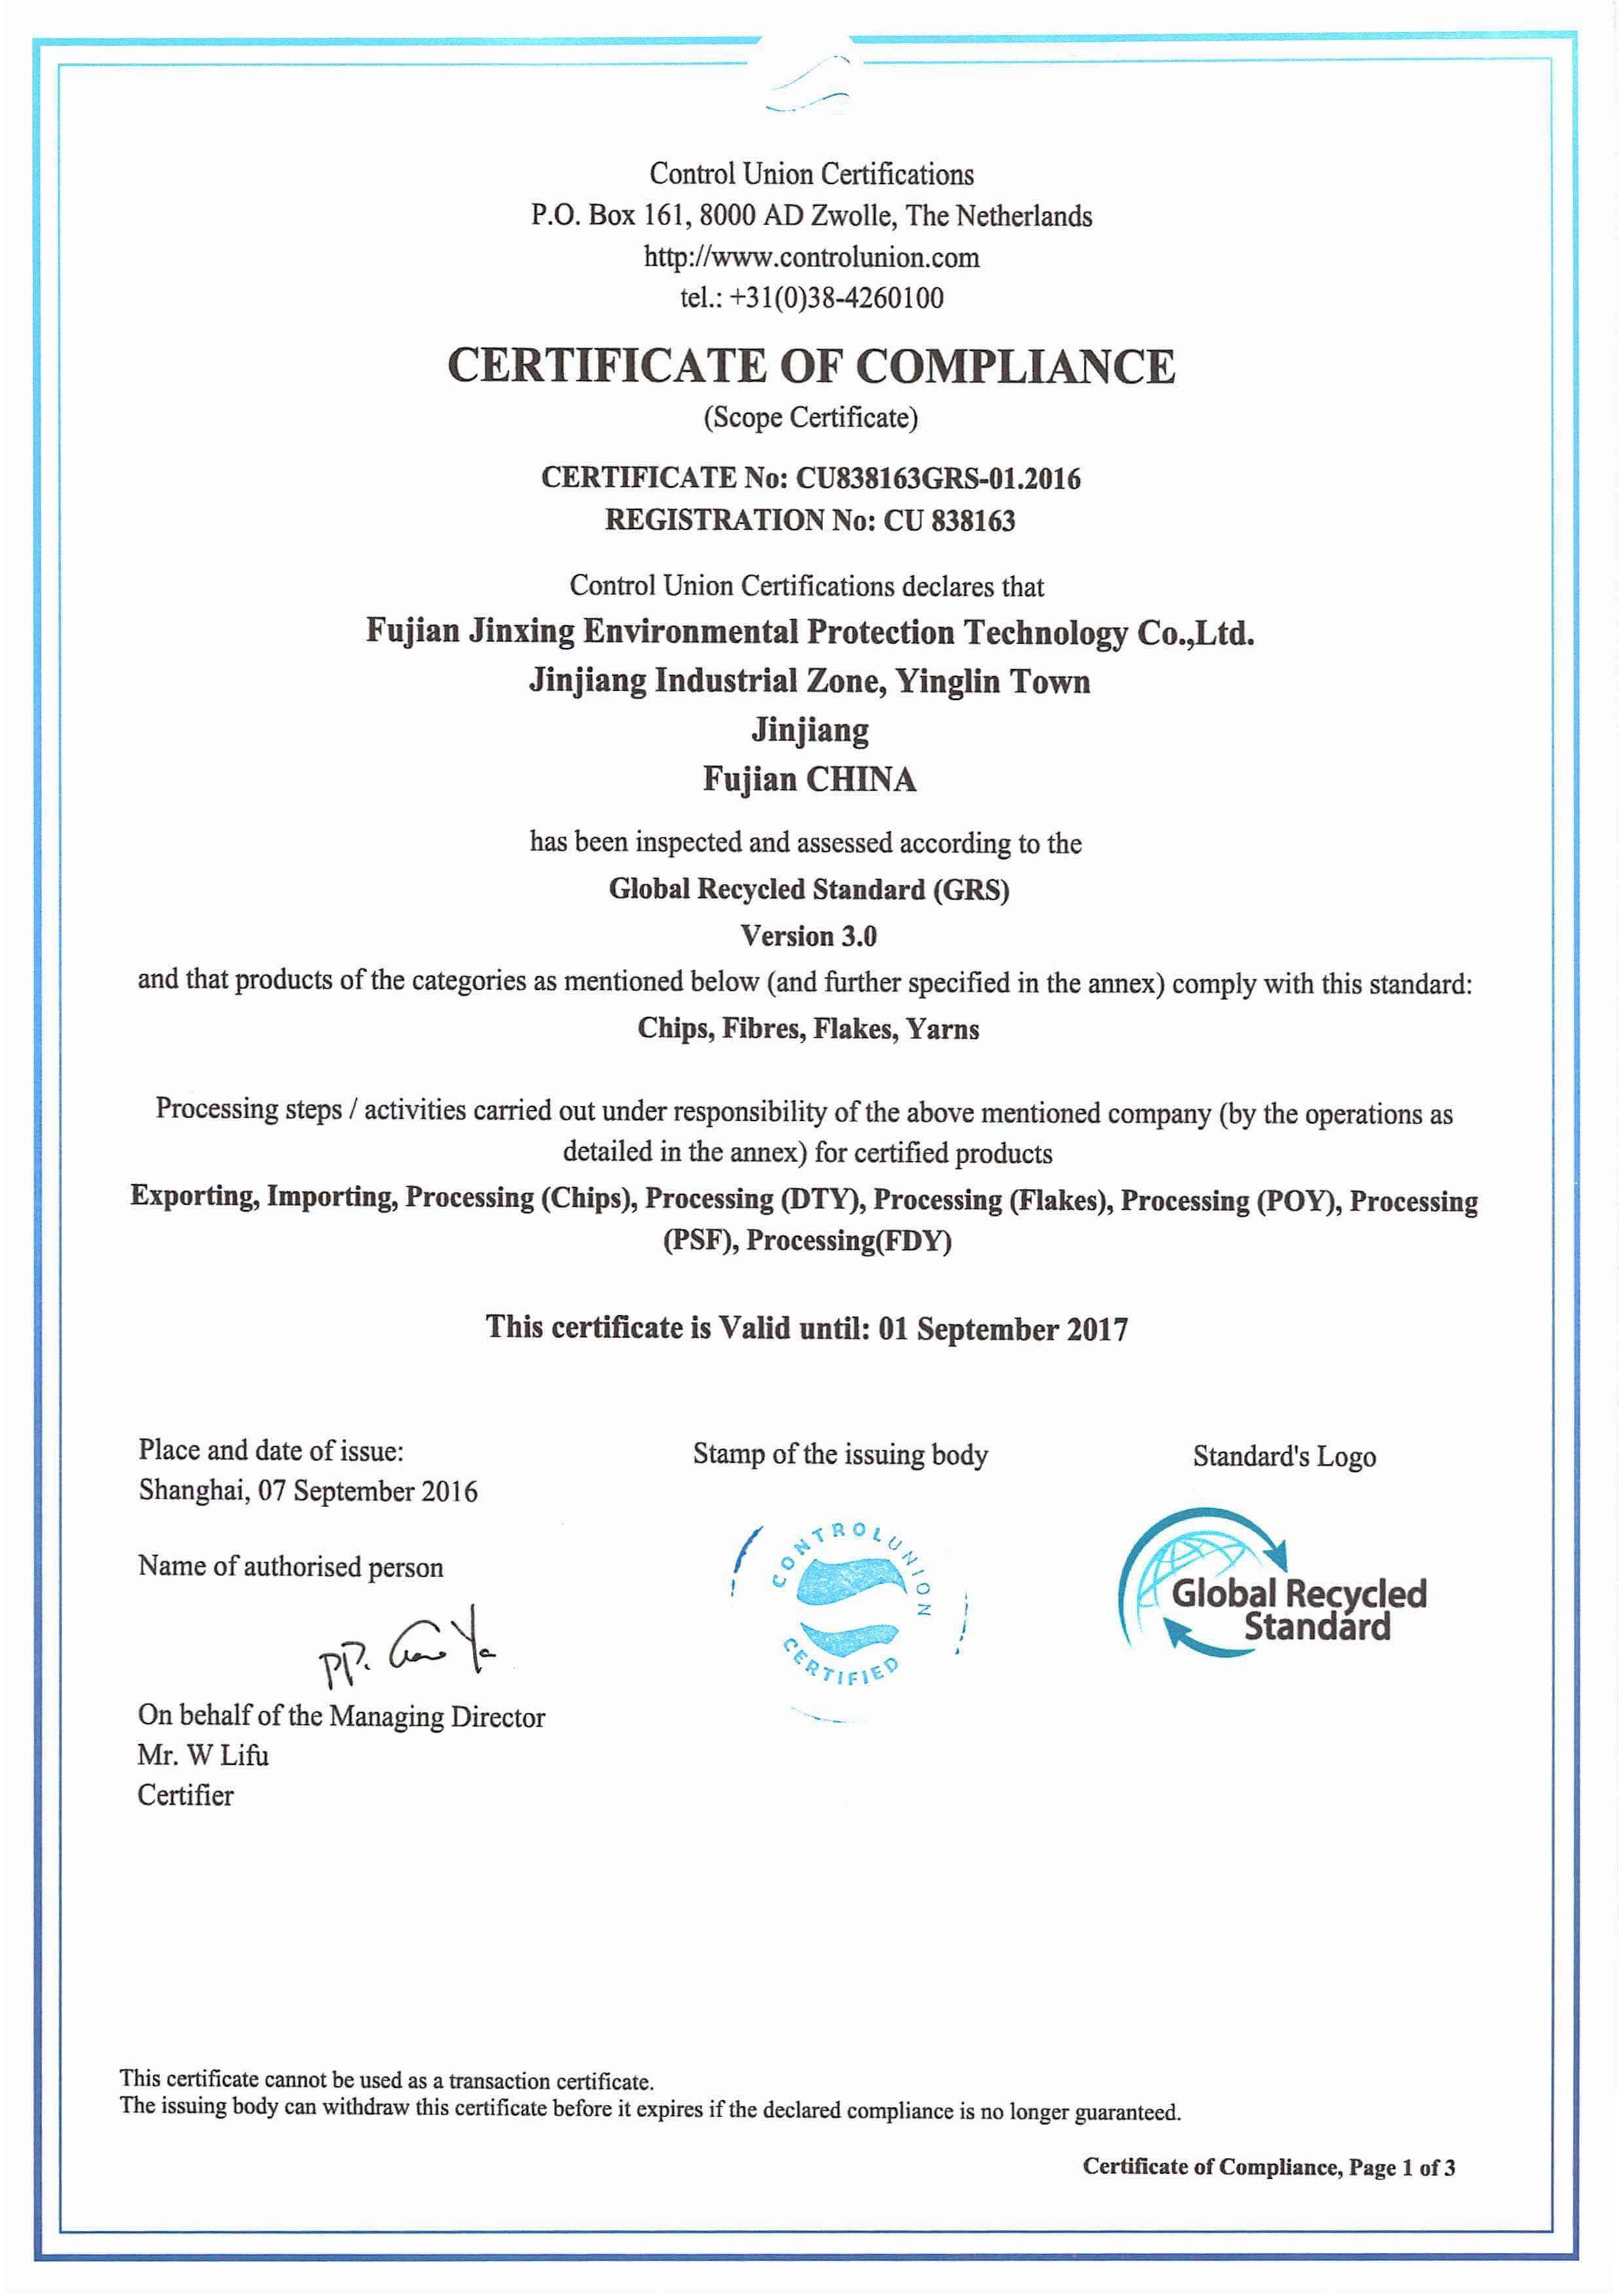 Certification of Global Recycled Standard